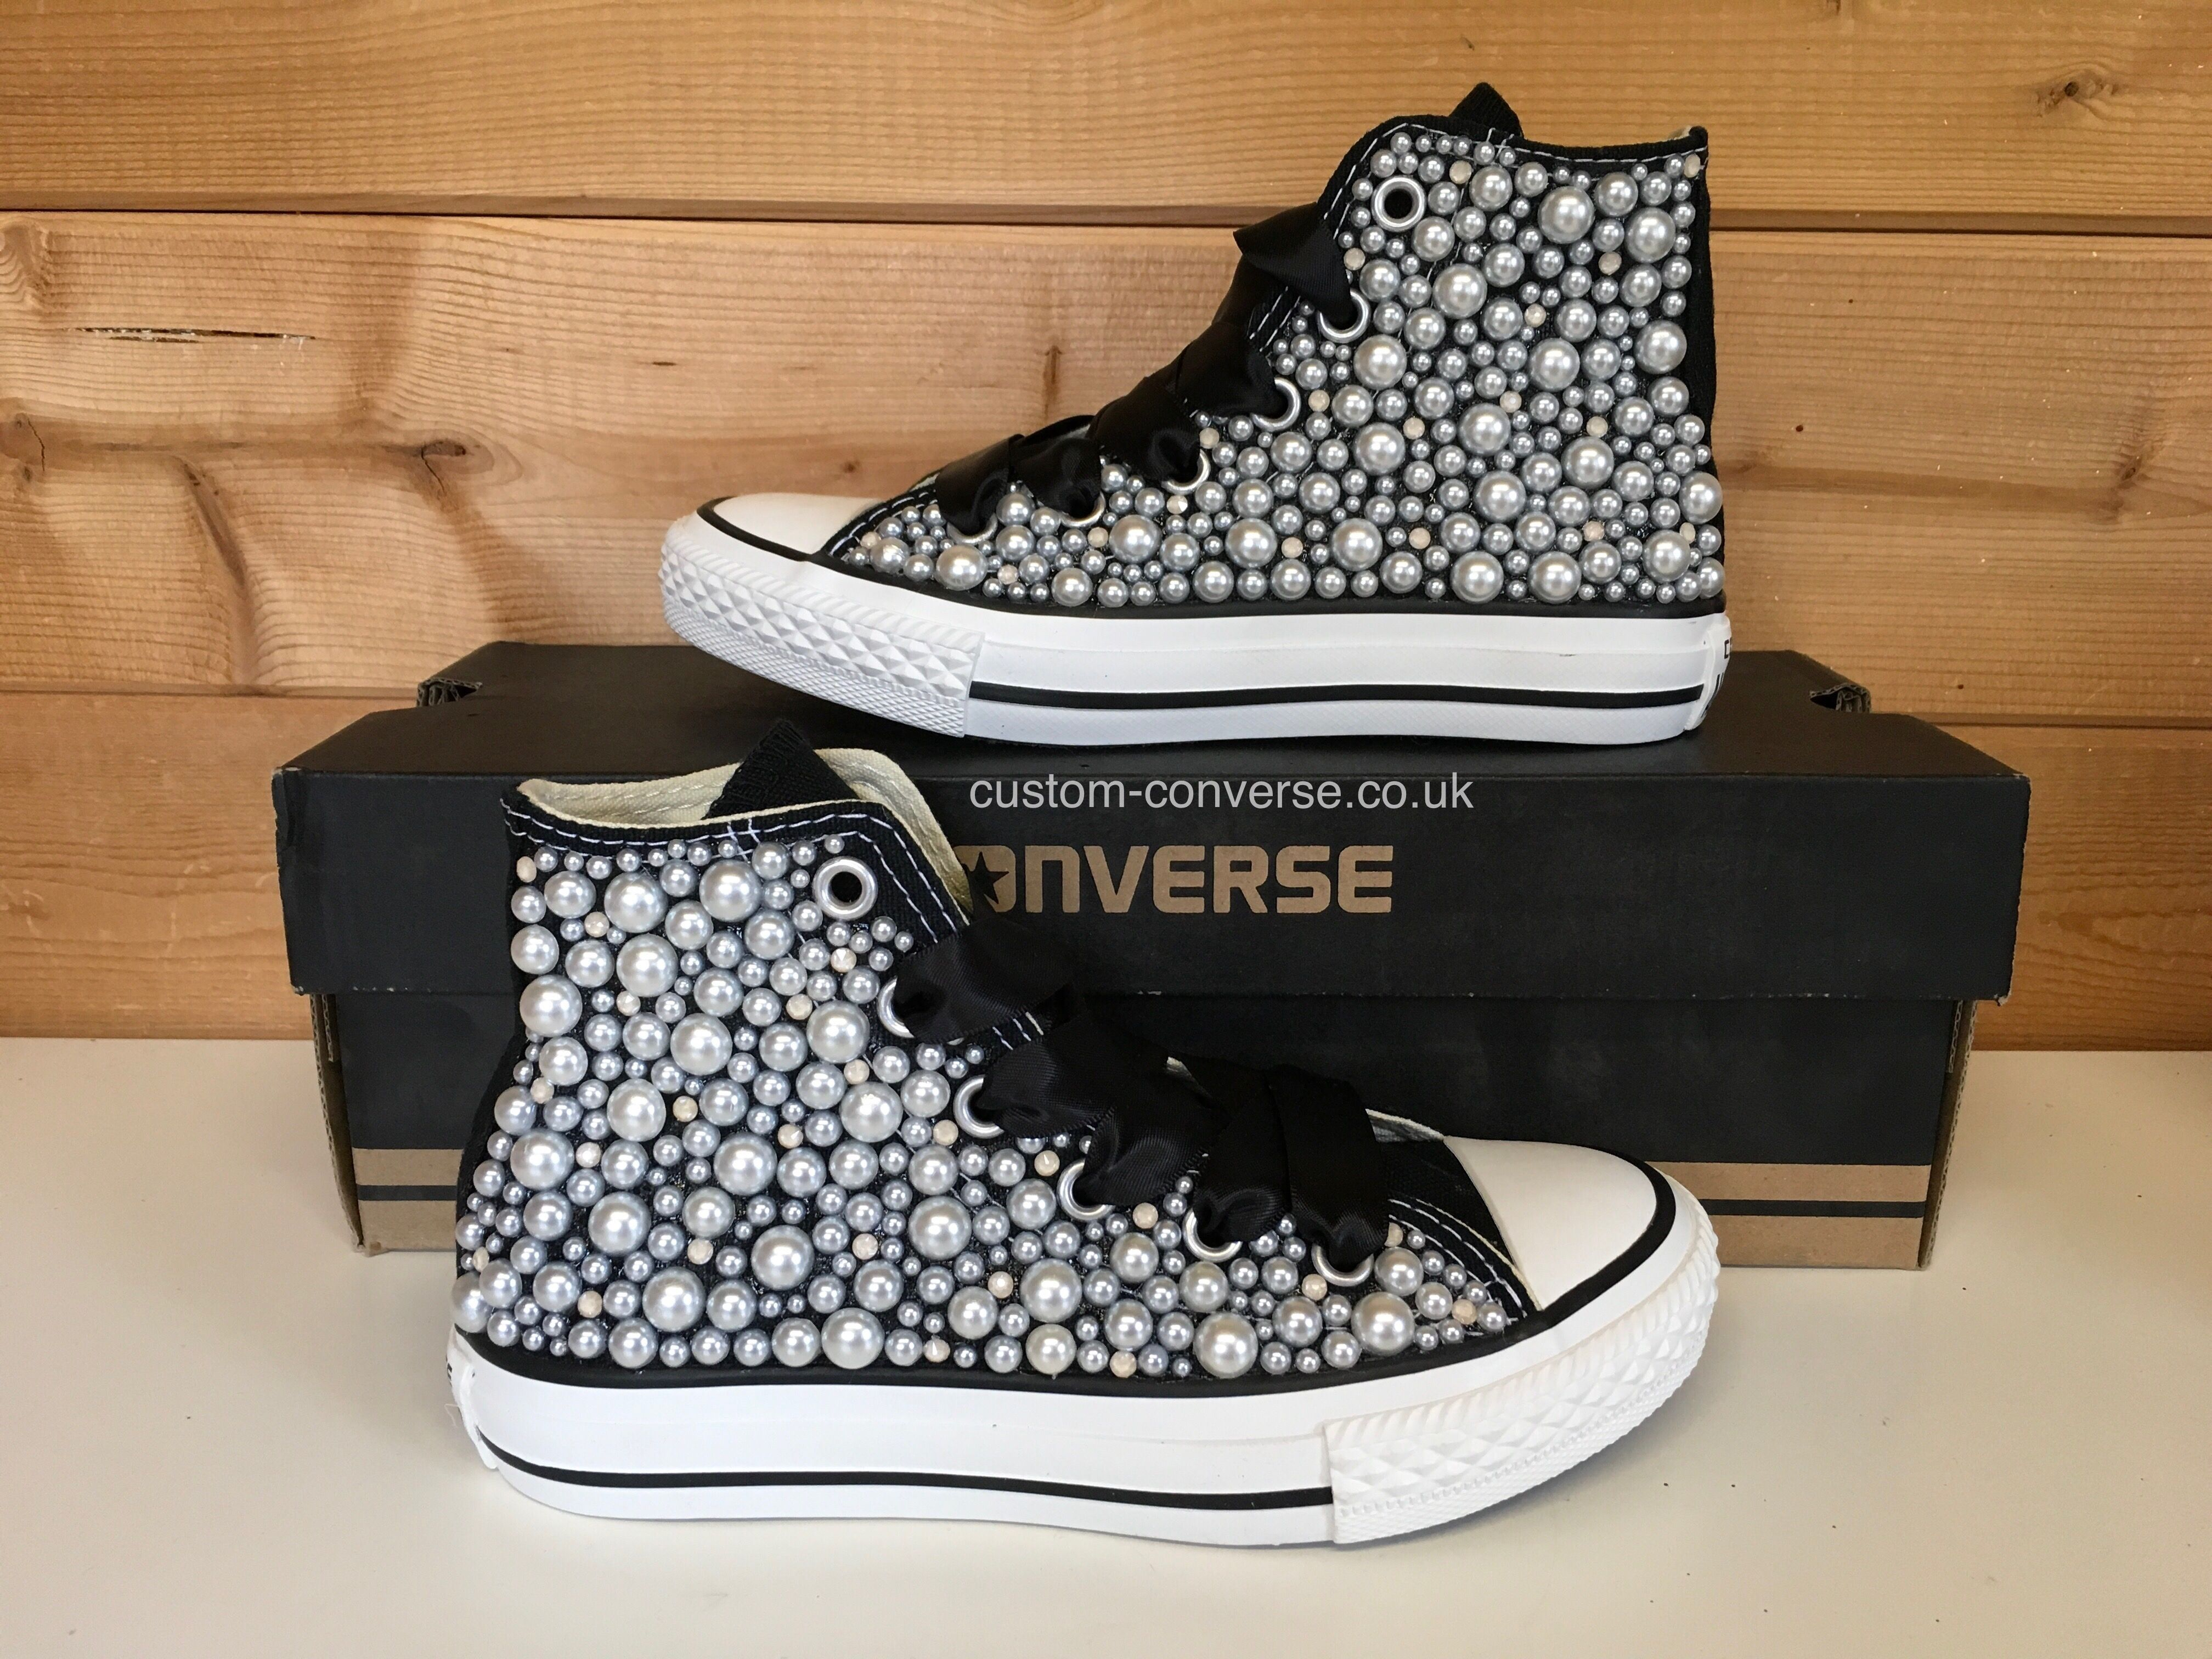 ed2aab9415d166 Kids mixed pearl and crystal covering on black high tops  converse   customconverse  wedding  weddingconverse  alternative  kidsshoes  fashion